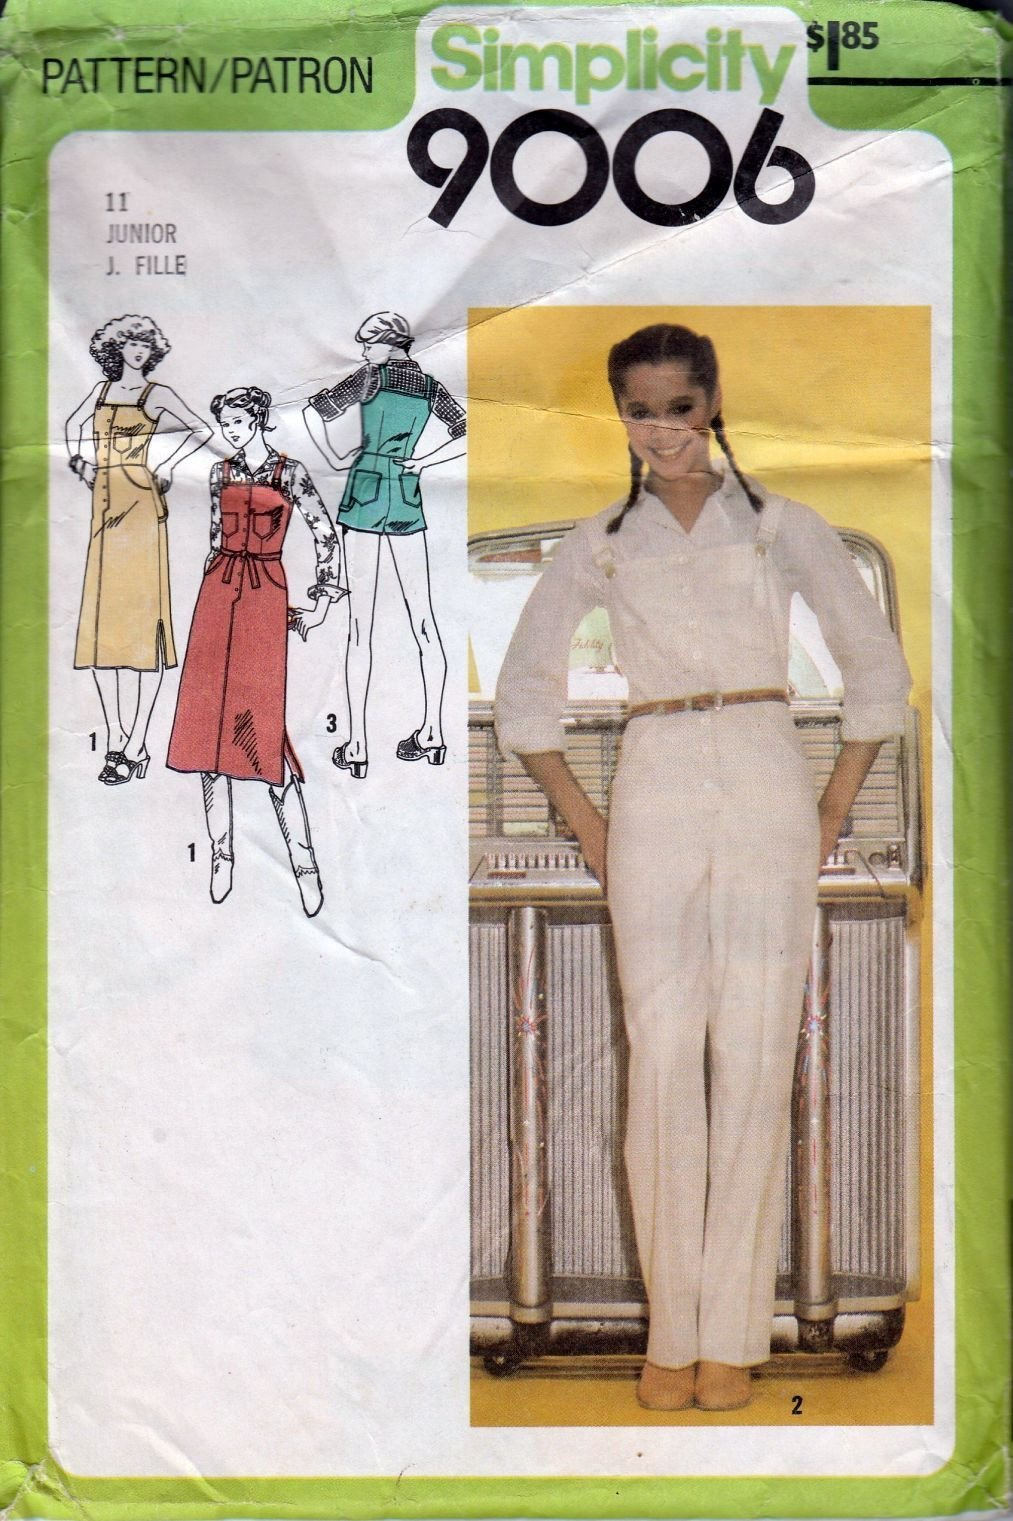 Simplicity 9006 Junior Overalls Jumper Dress Sundress Vintage Sewing Pattern 1970's - VintageStitching - Vintage Sewing Patterns